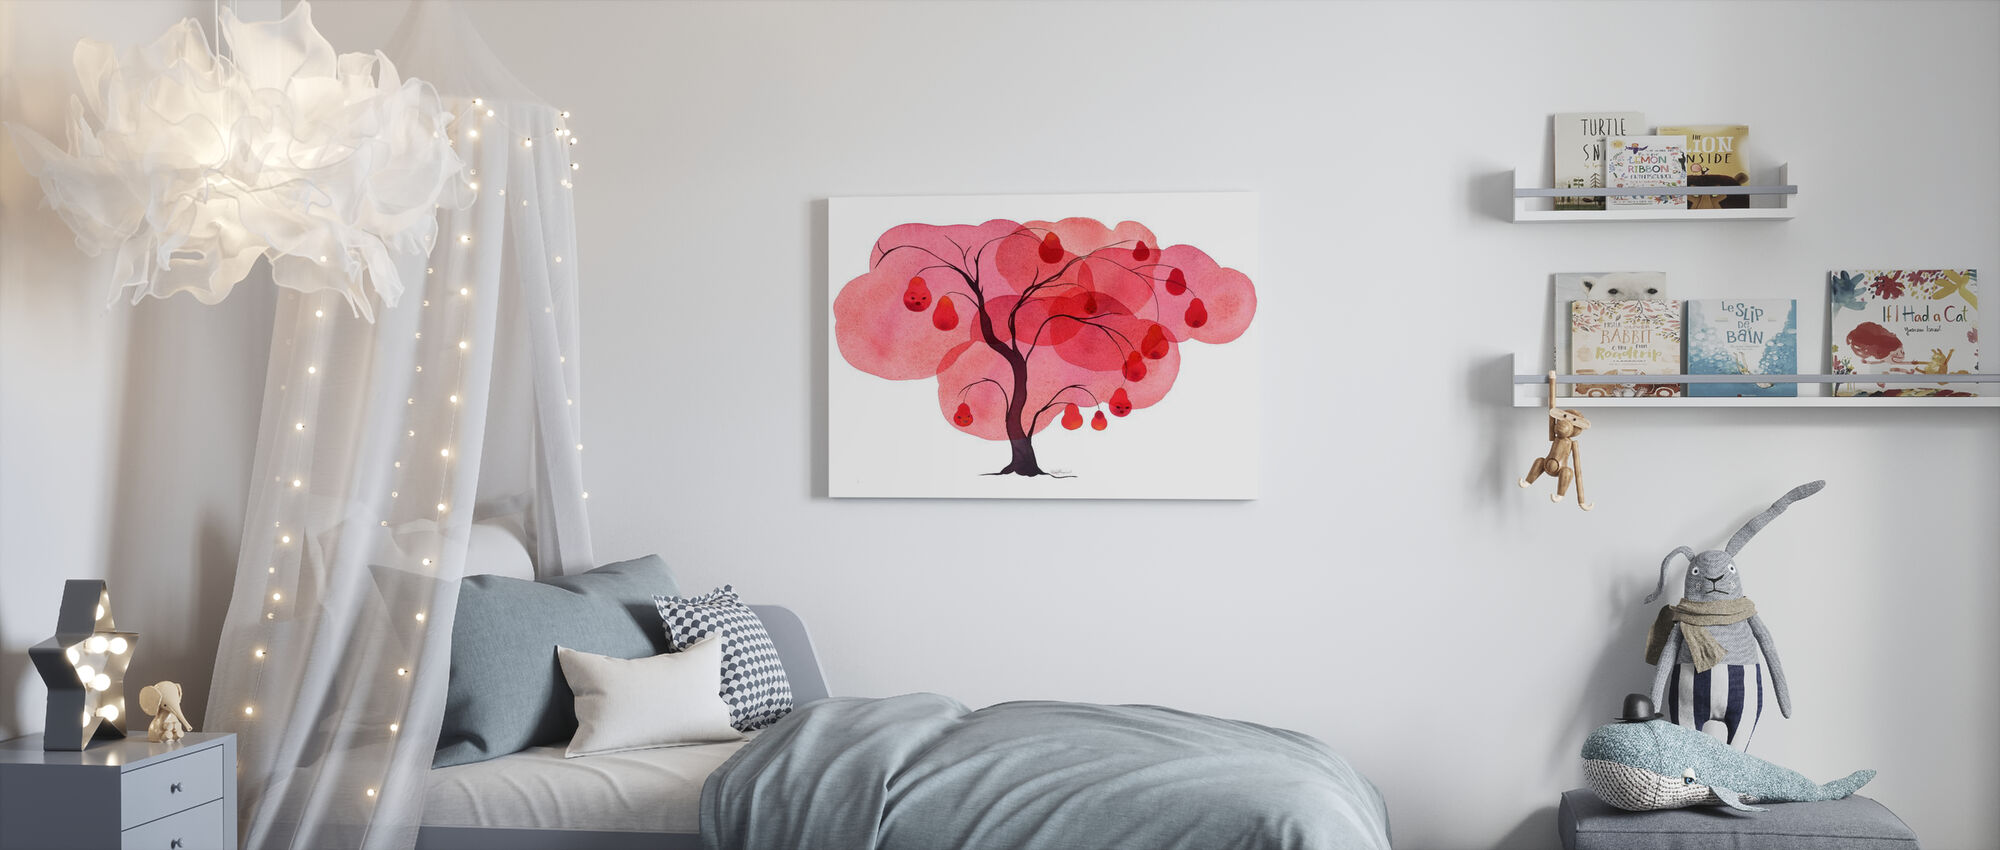 Water Color Trees I - Canvas print - Kids Room